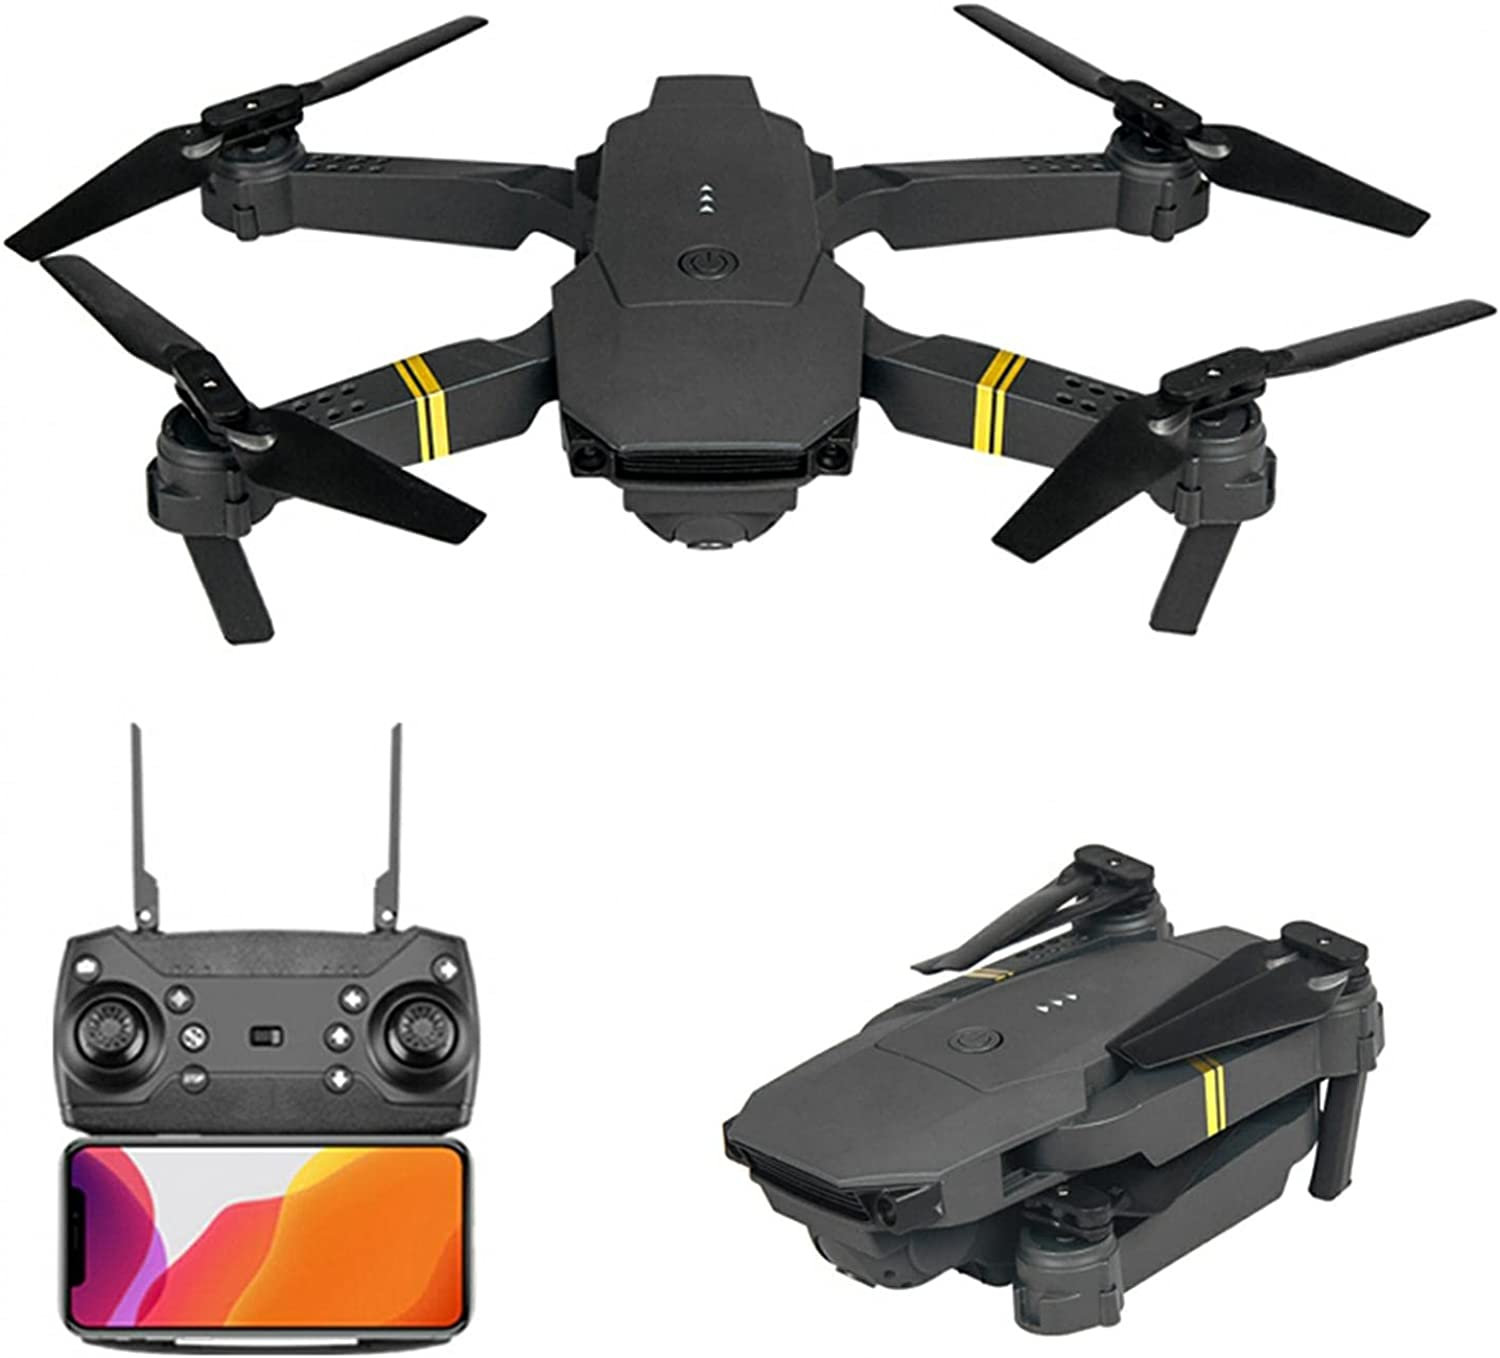 BYCZ Drones with Camera for Kids Adults 4K/1080P/720P, 6-Axis, Wifi FPV Quadcopter, One Key Start, Auto Return Home